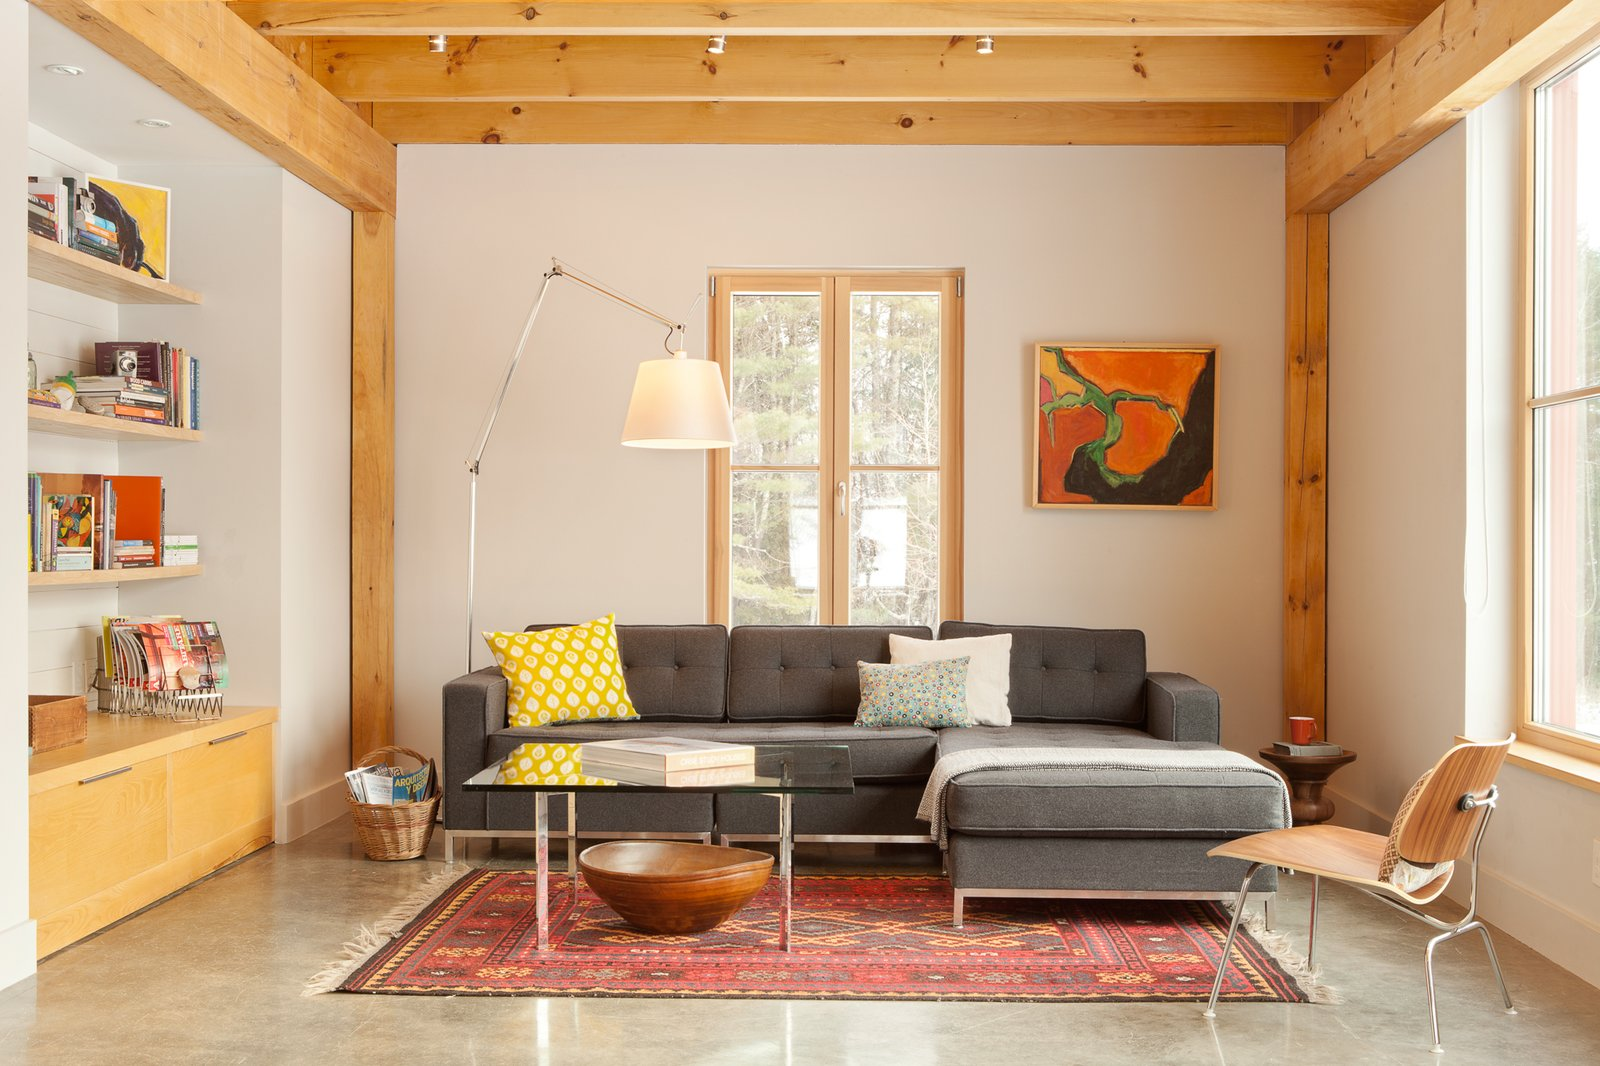 Living, Sectional, Coffee Tables, Chair, Shelves, Track, Concrete, Rug, Floor, Lamps, and End Tables  Best Living Track Floor Photos from GO Home Takes the Passive House Approach to Prefab